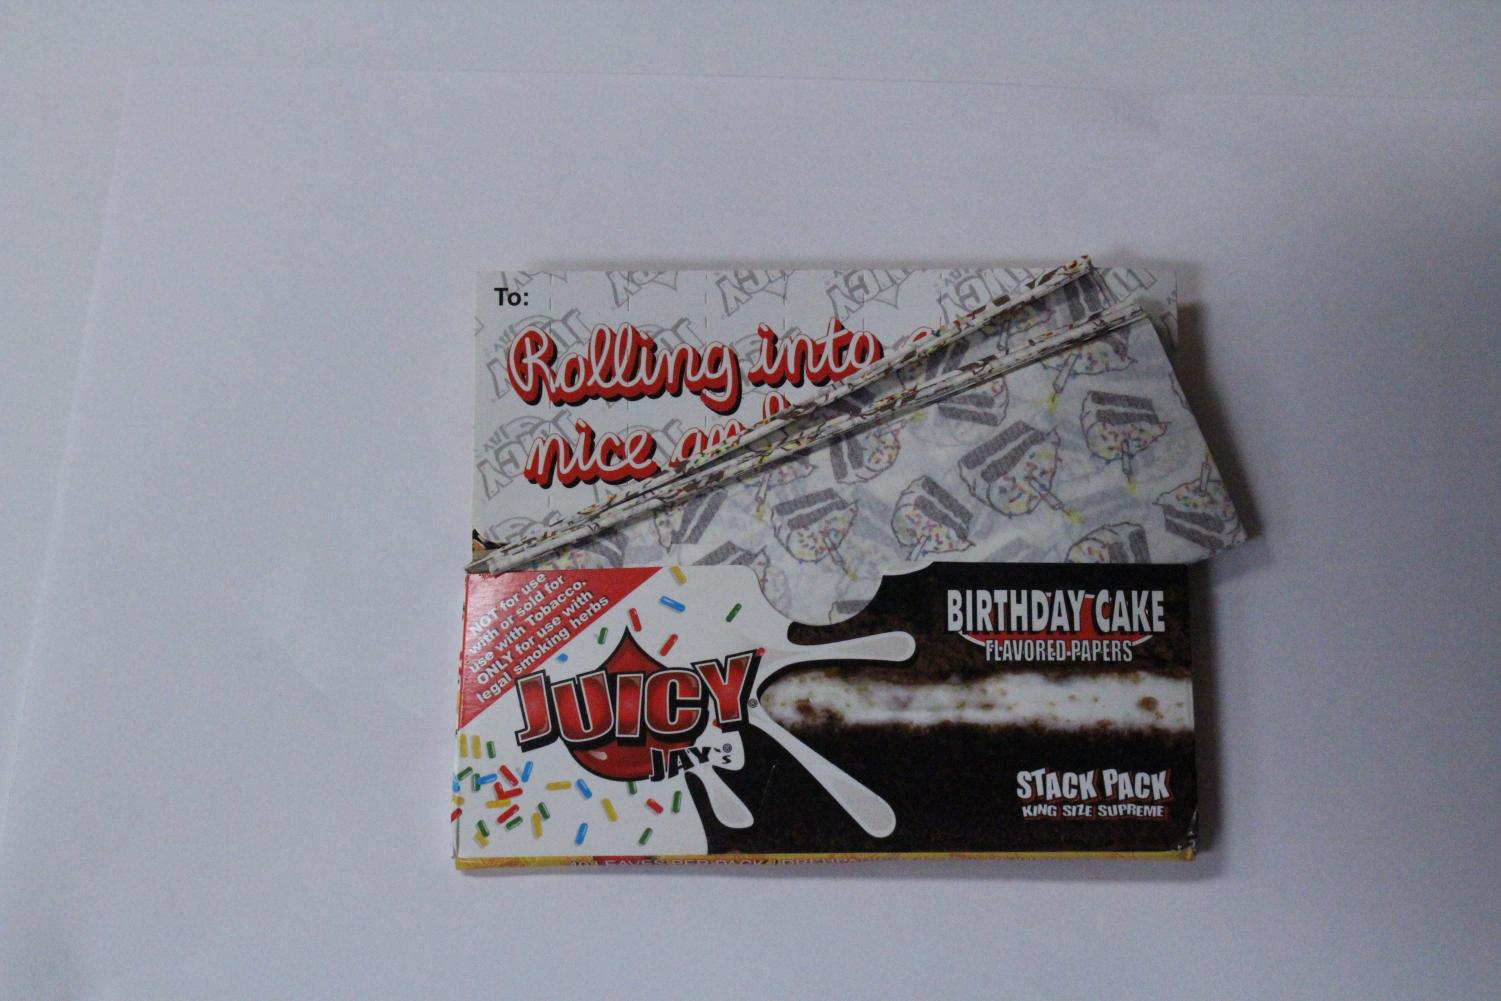 Birthday edition rolling papers. An expert from the Harvard School of Public Health says